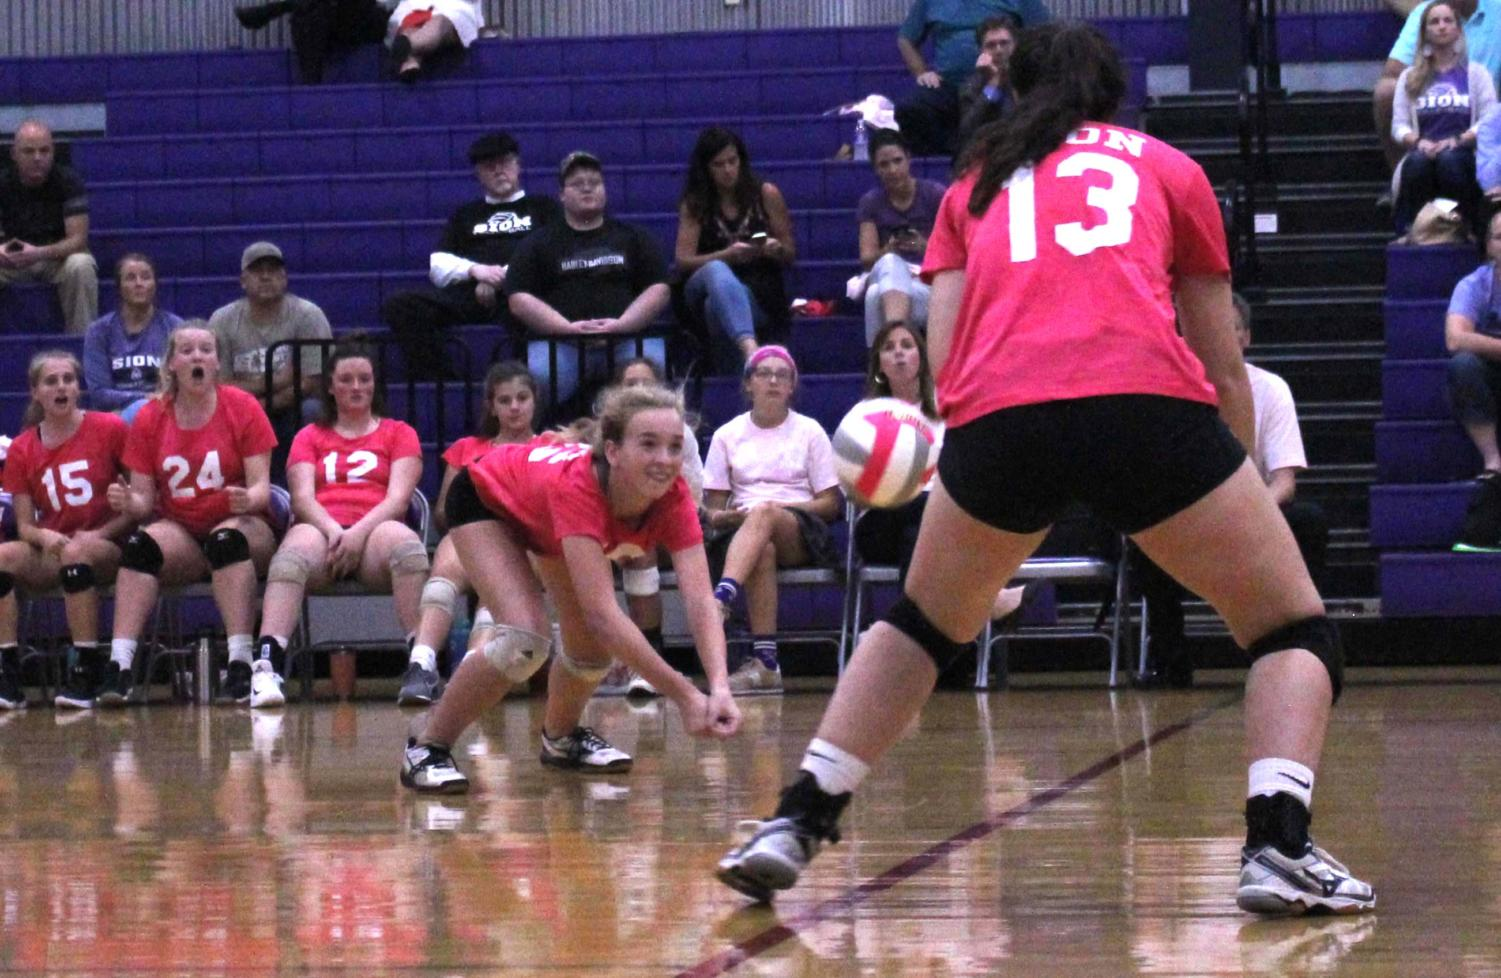 Freshman Bridgette Conner dives for the volleyball as junior Ceresa Munjak-Khoury goes to save it during the Dig Pink game Oct. 1.